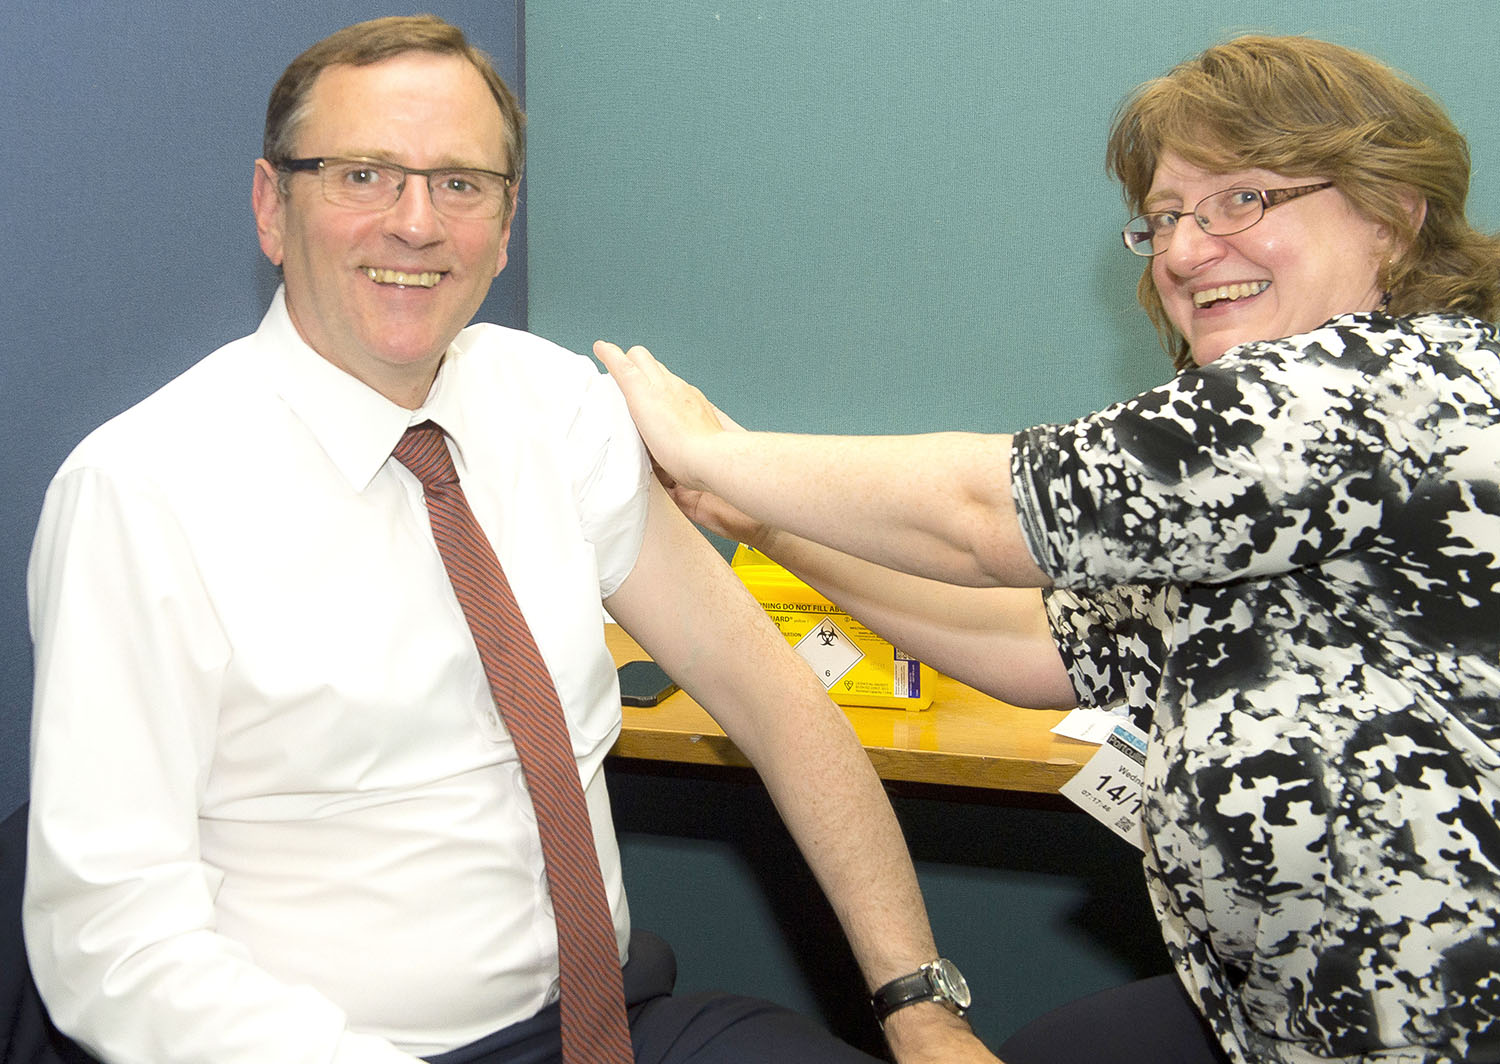 Don't Forget Your Flu Vaccine says M.P.